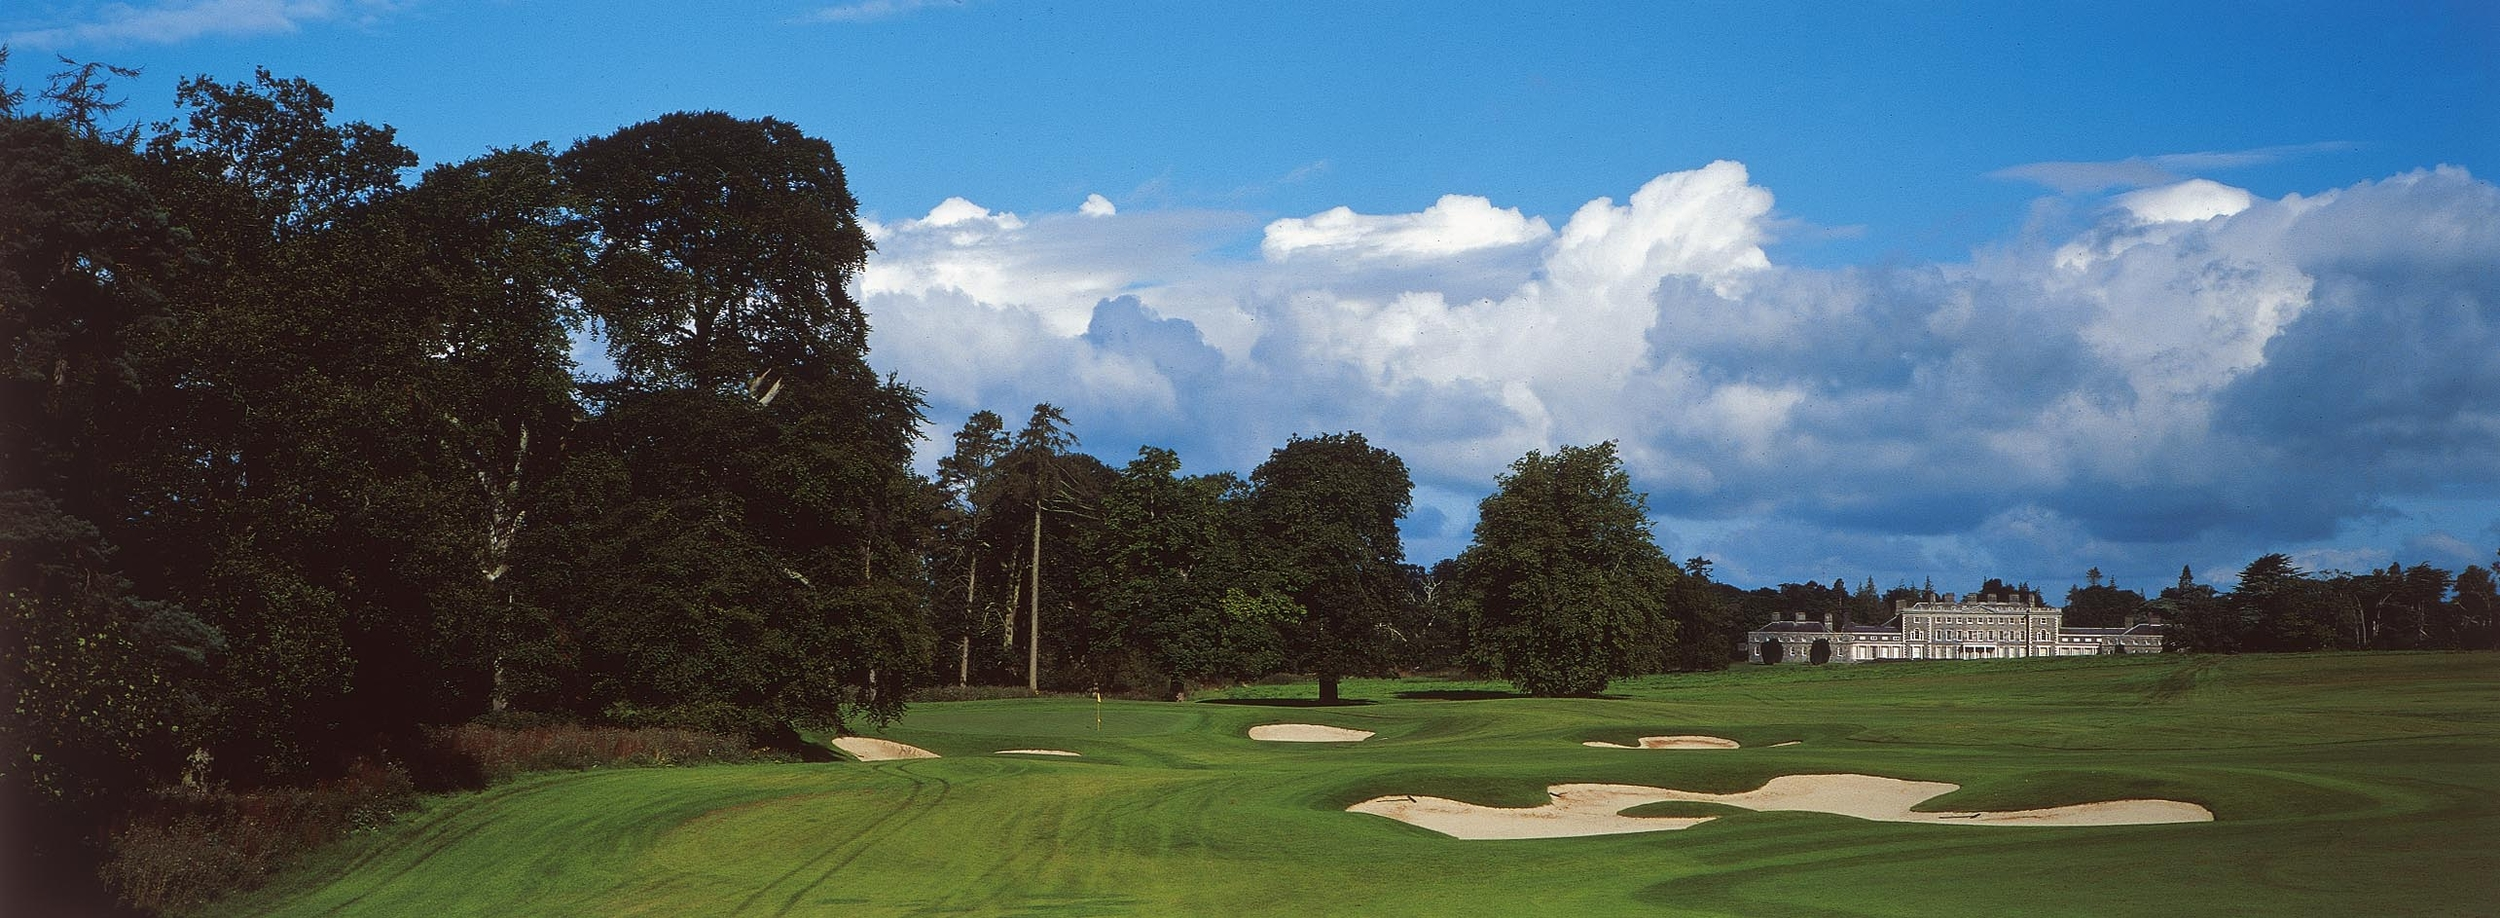 The 17th on the O'Meara Course at Carton House.